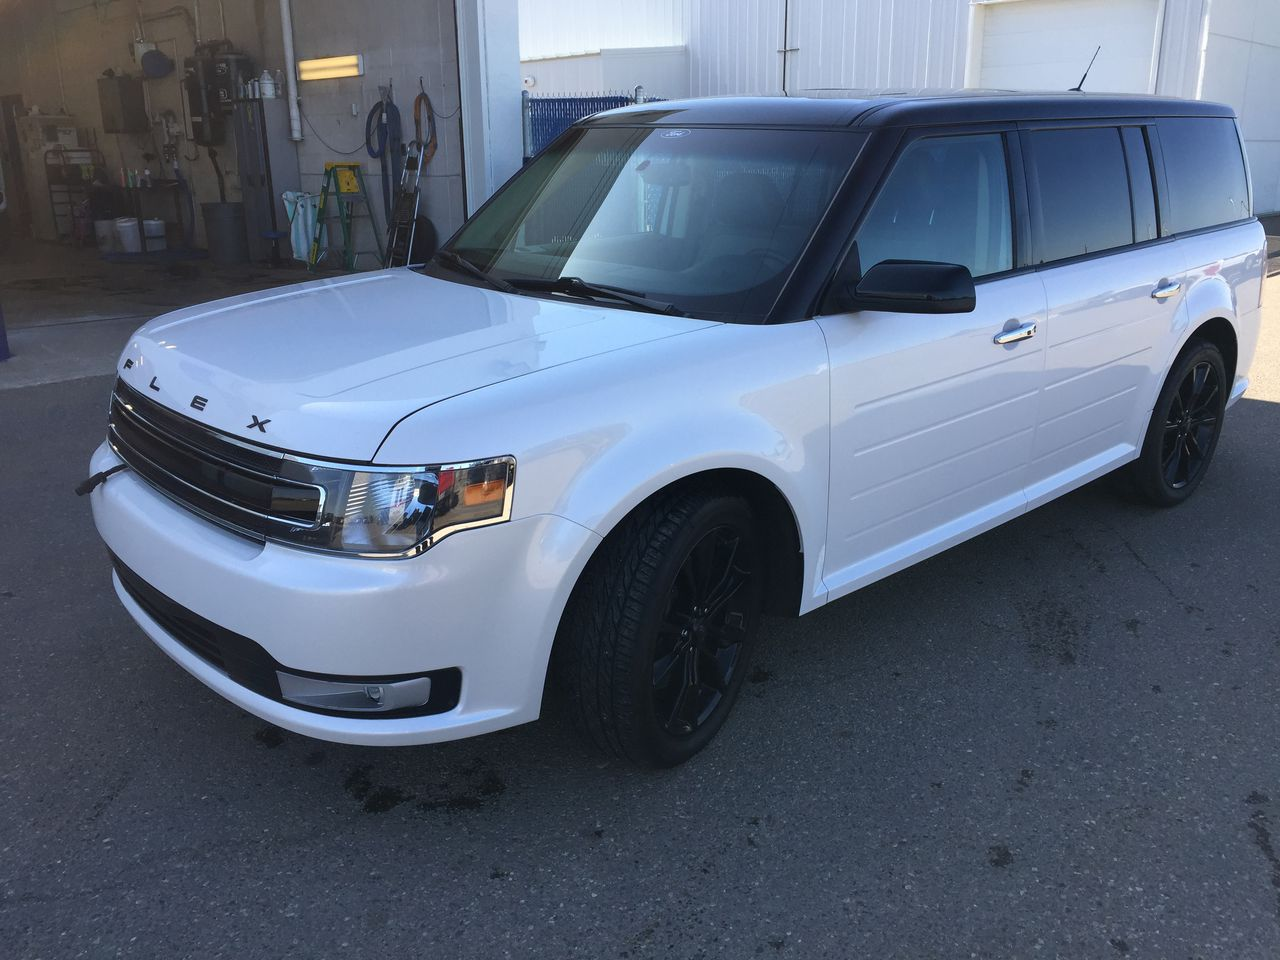 2017 Ford Flex SEL AWD MOON ROOF NAVIGATION LEATHER (U3936) Main Image